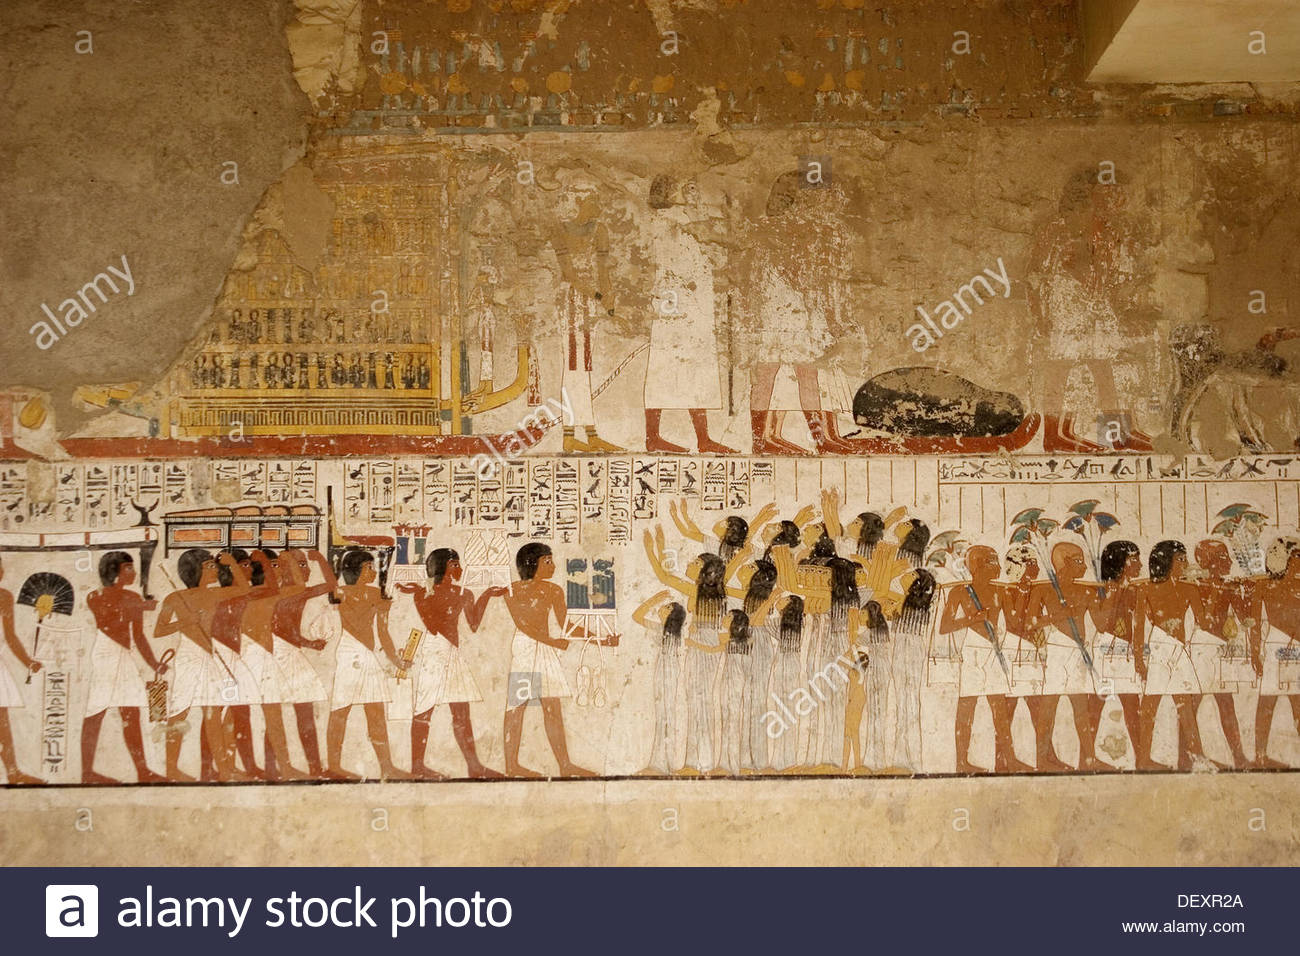 Tombs of the Nobles Luxor, Mural paintings in the tomb of Ramose. Tombs of the Nobles, Luxor ...